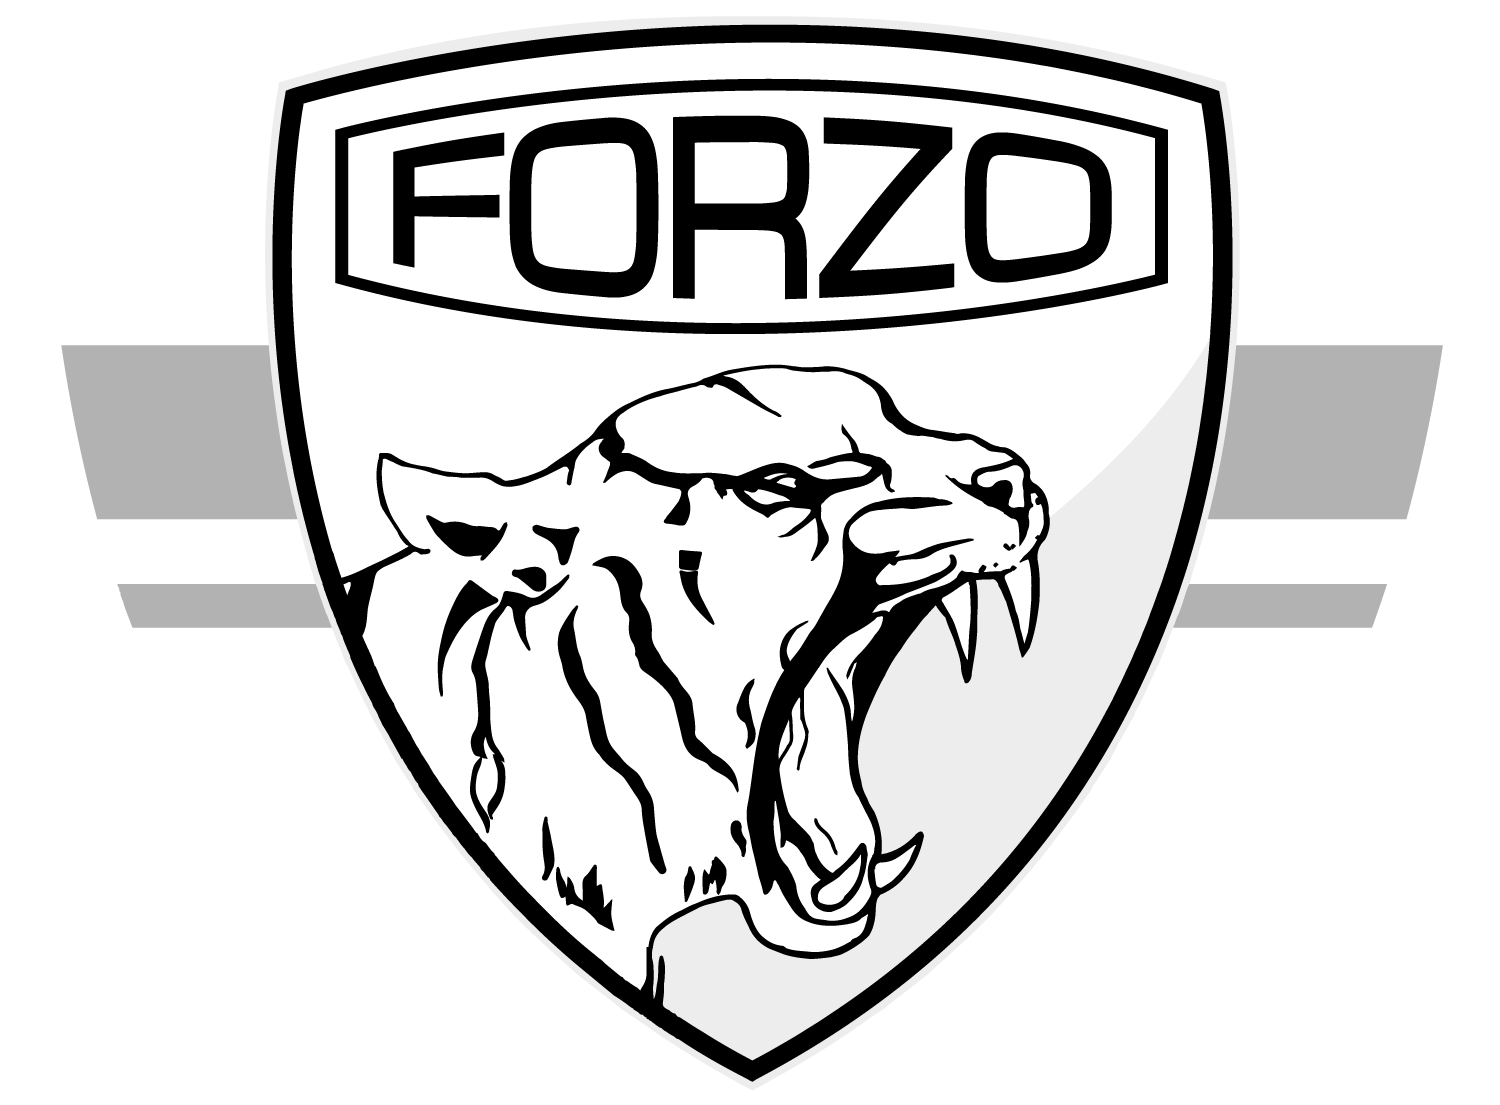 FORZO Watches